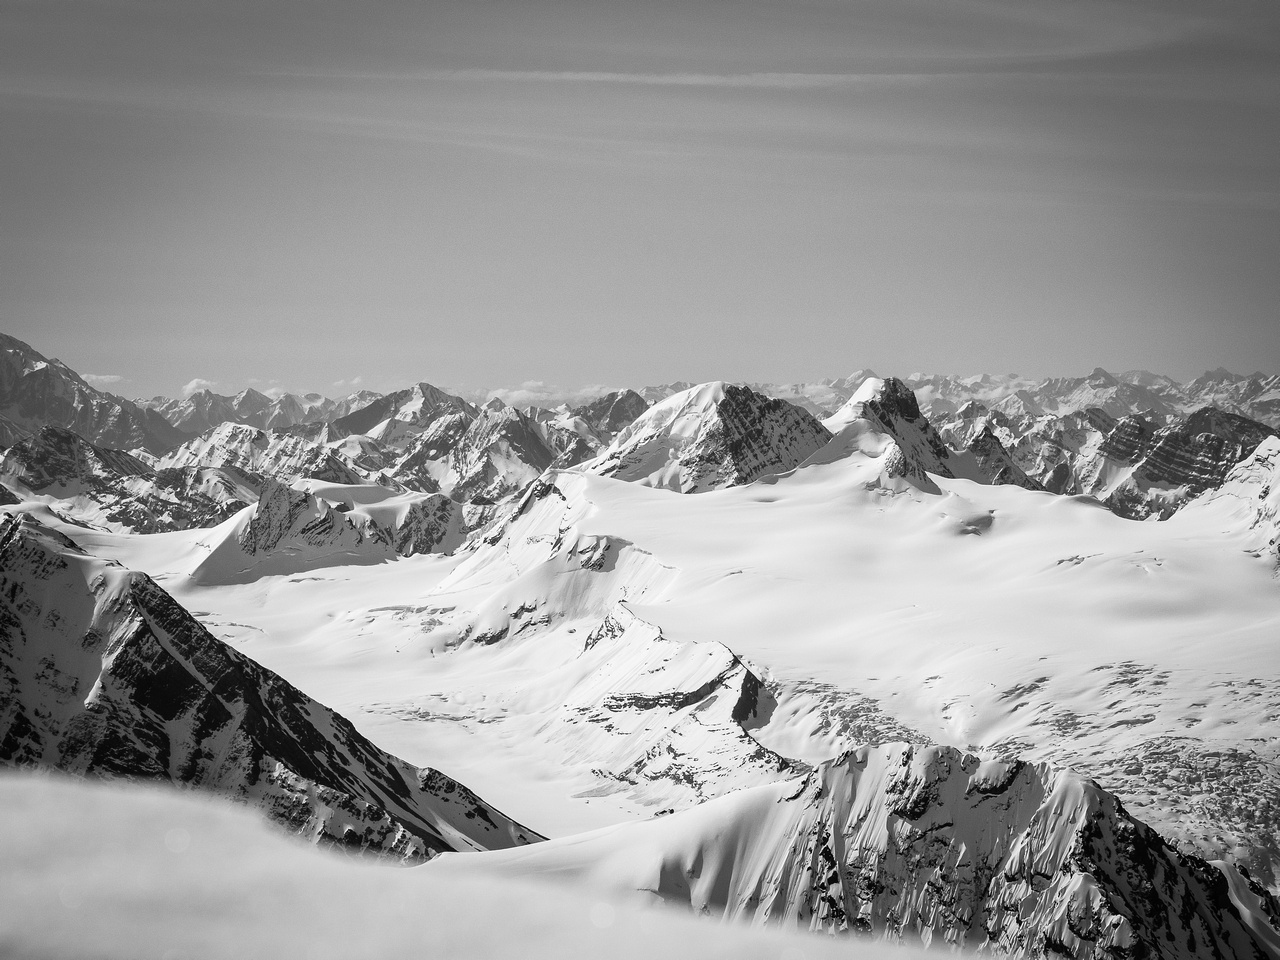 Mount Mummery and the Freshfield Icefield to the south over the summit cornice.